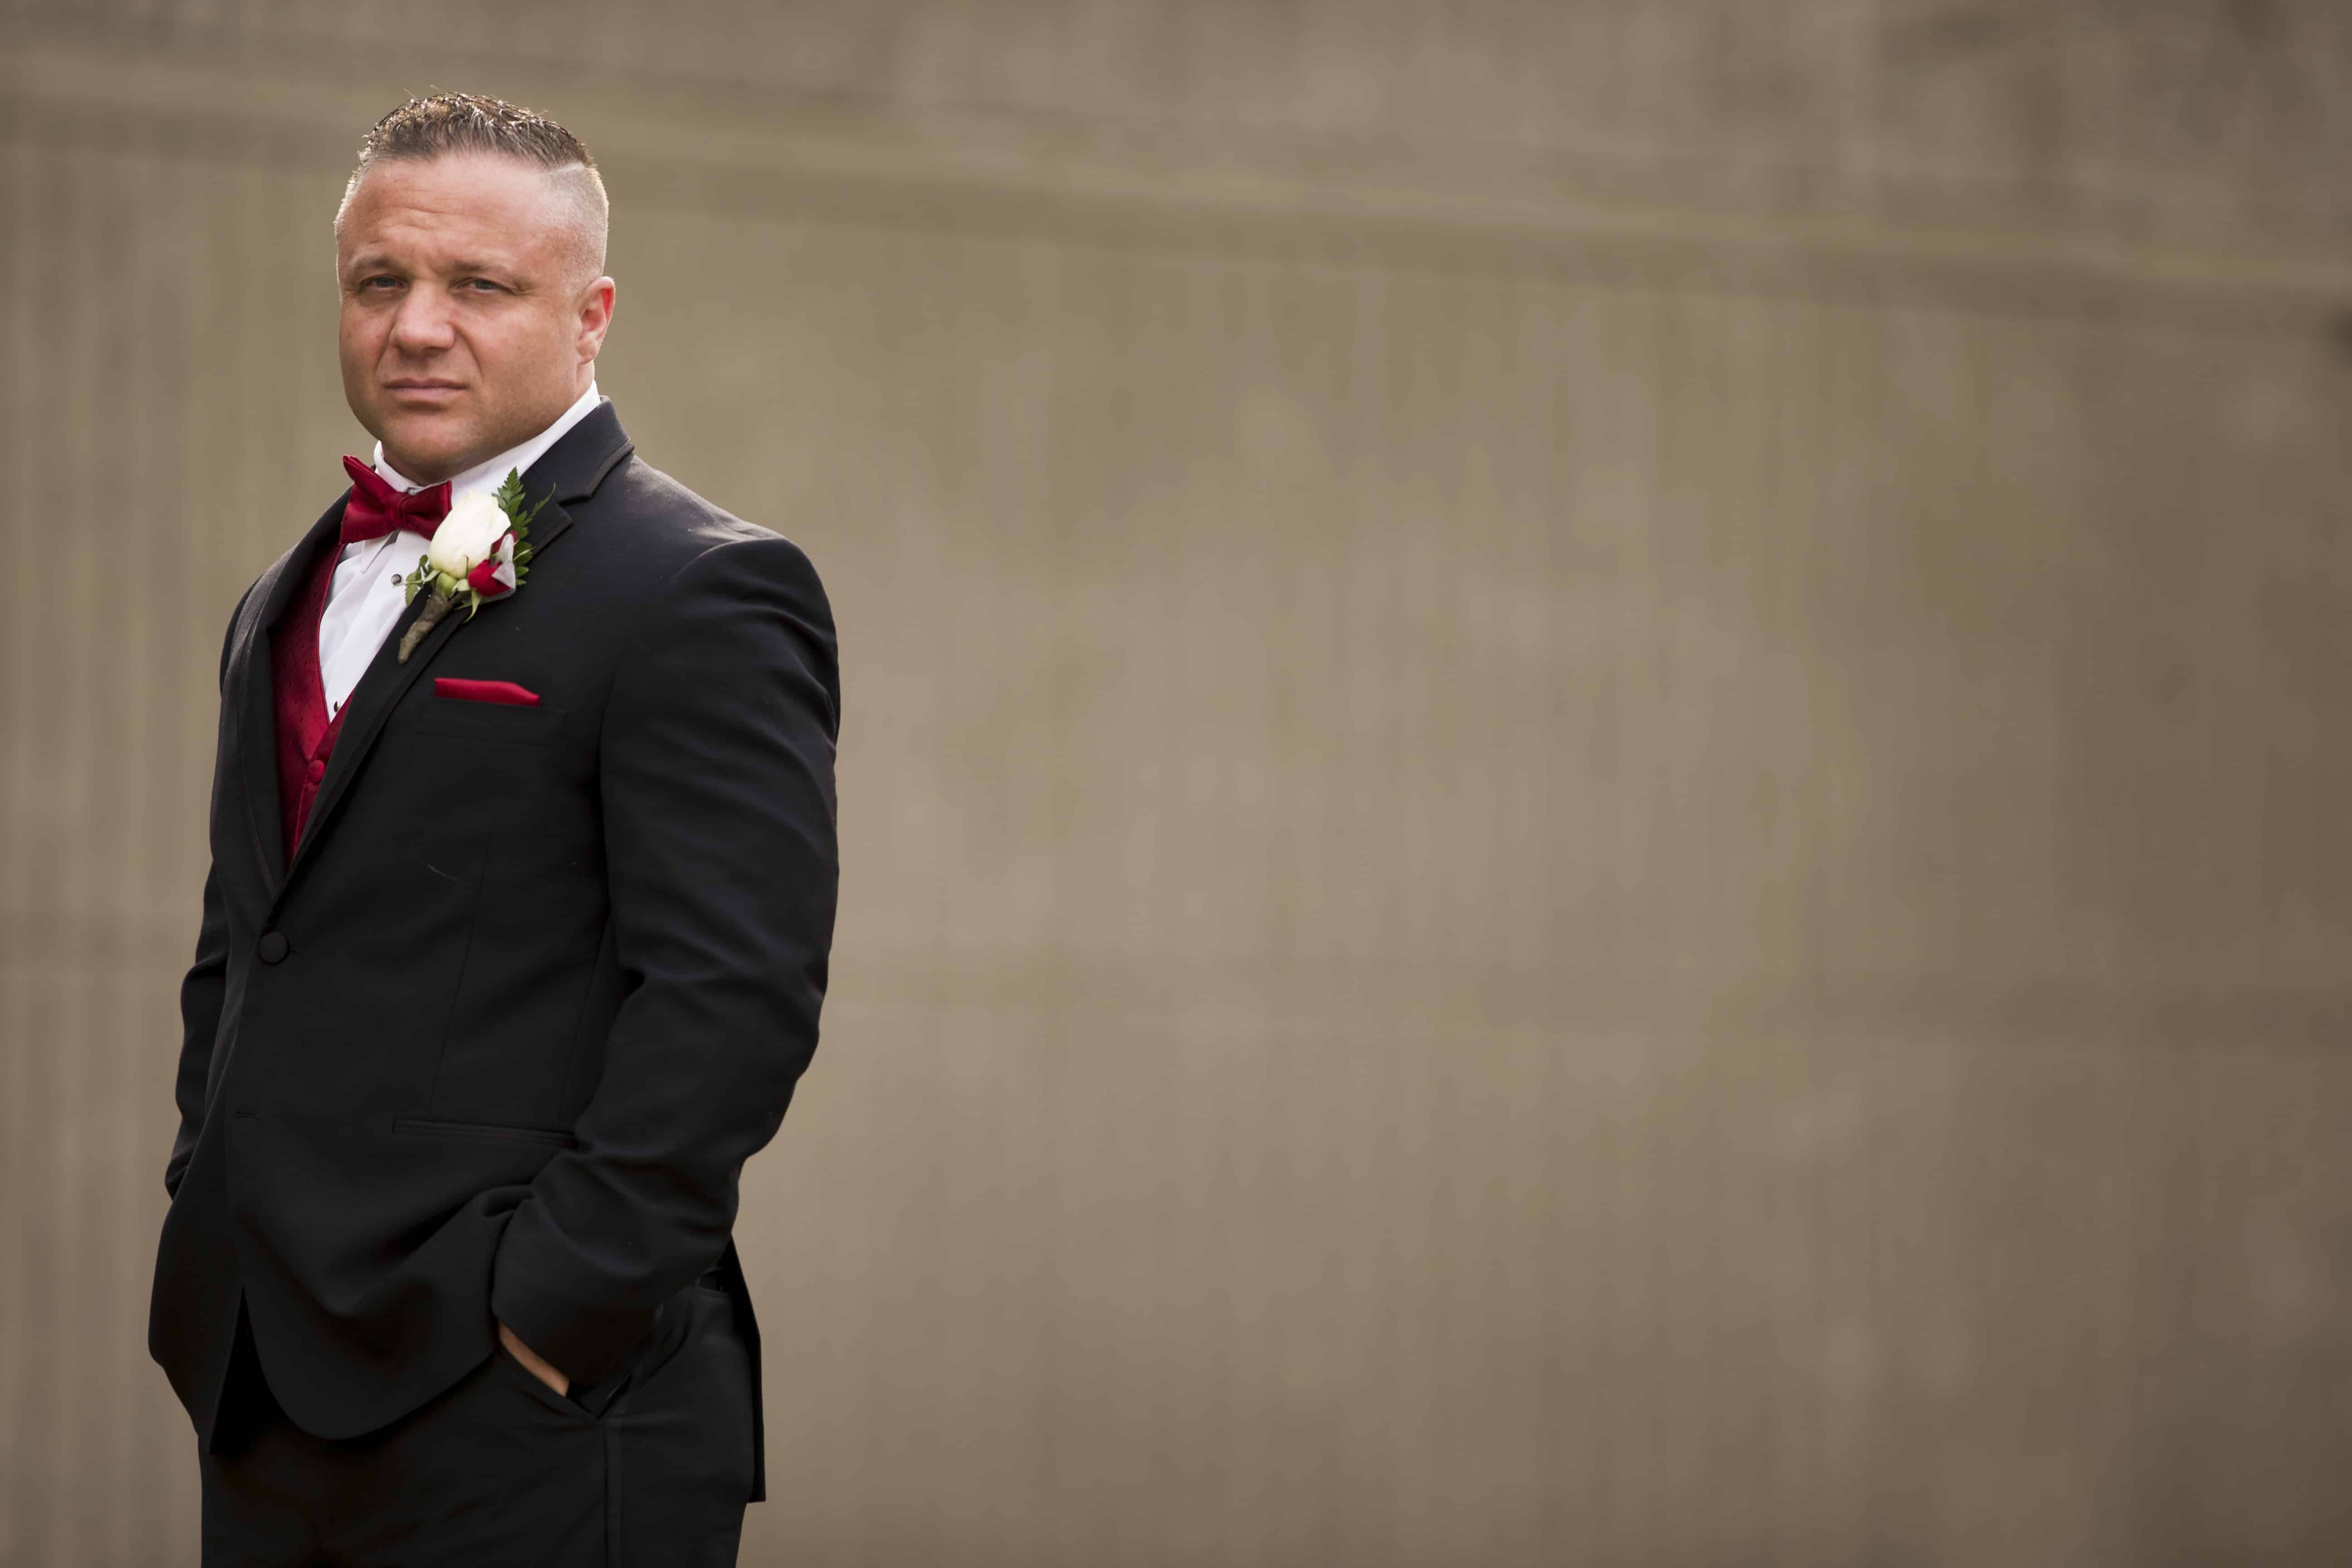 groom picture at university of akron